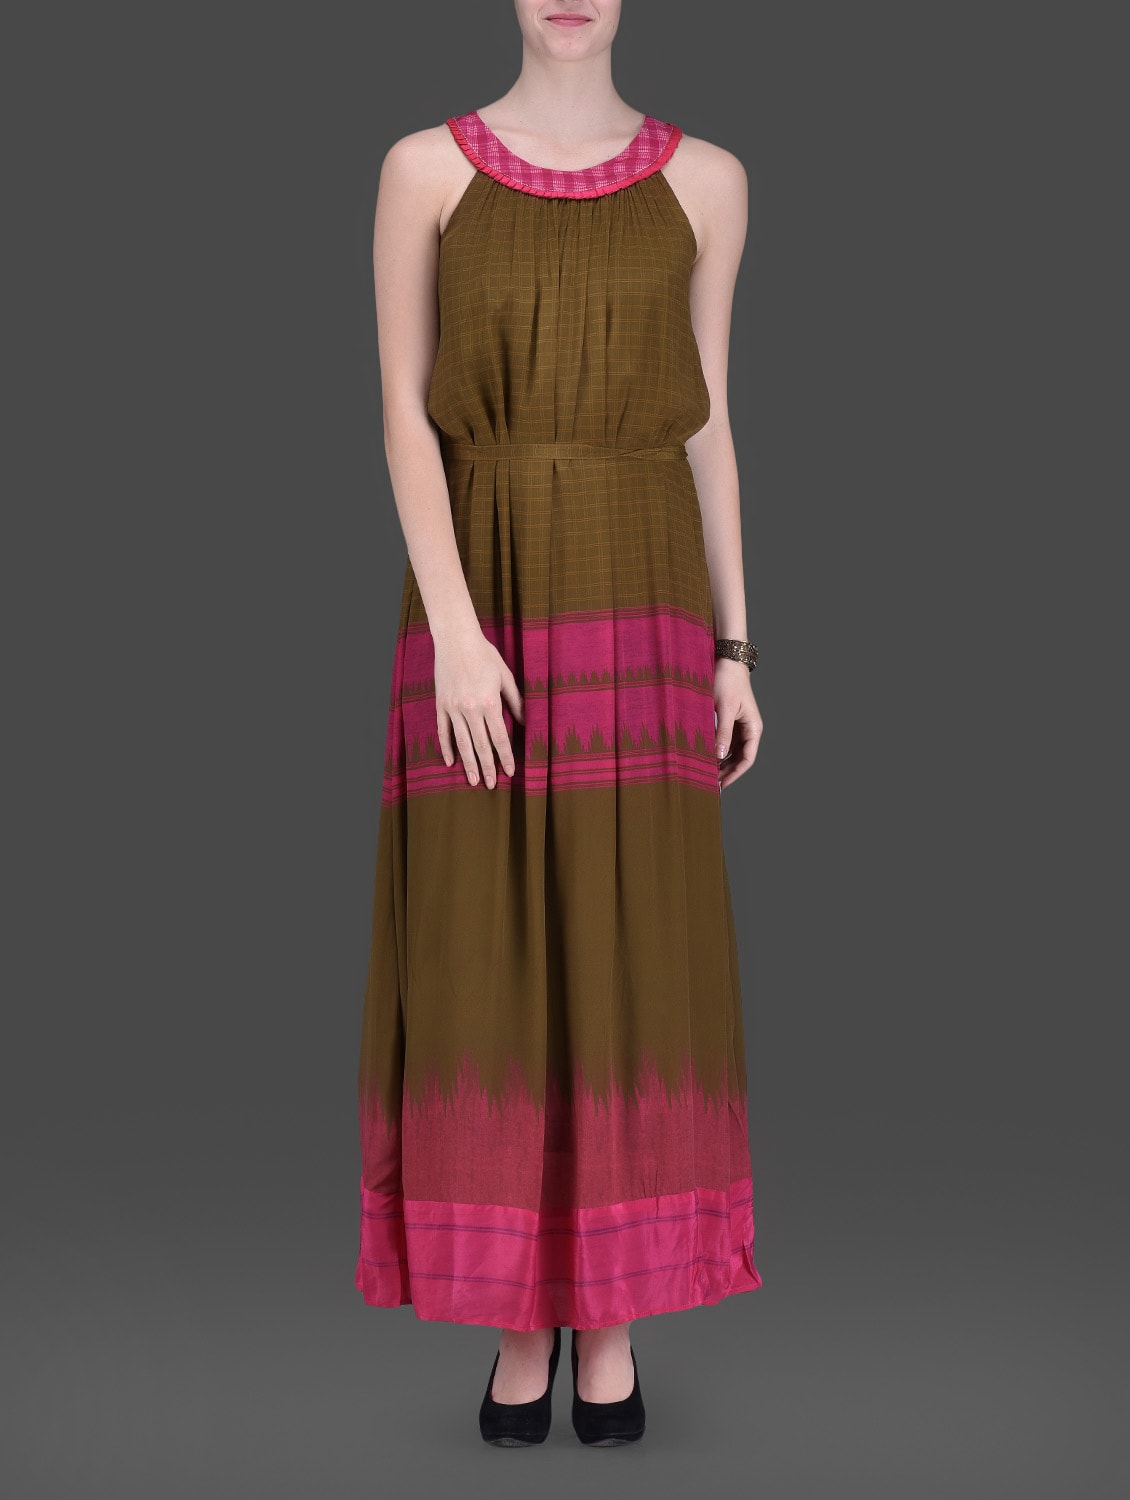 Olive Green Geometric Printed Maxi Dress - LABEL Ritu Kumar